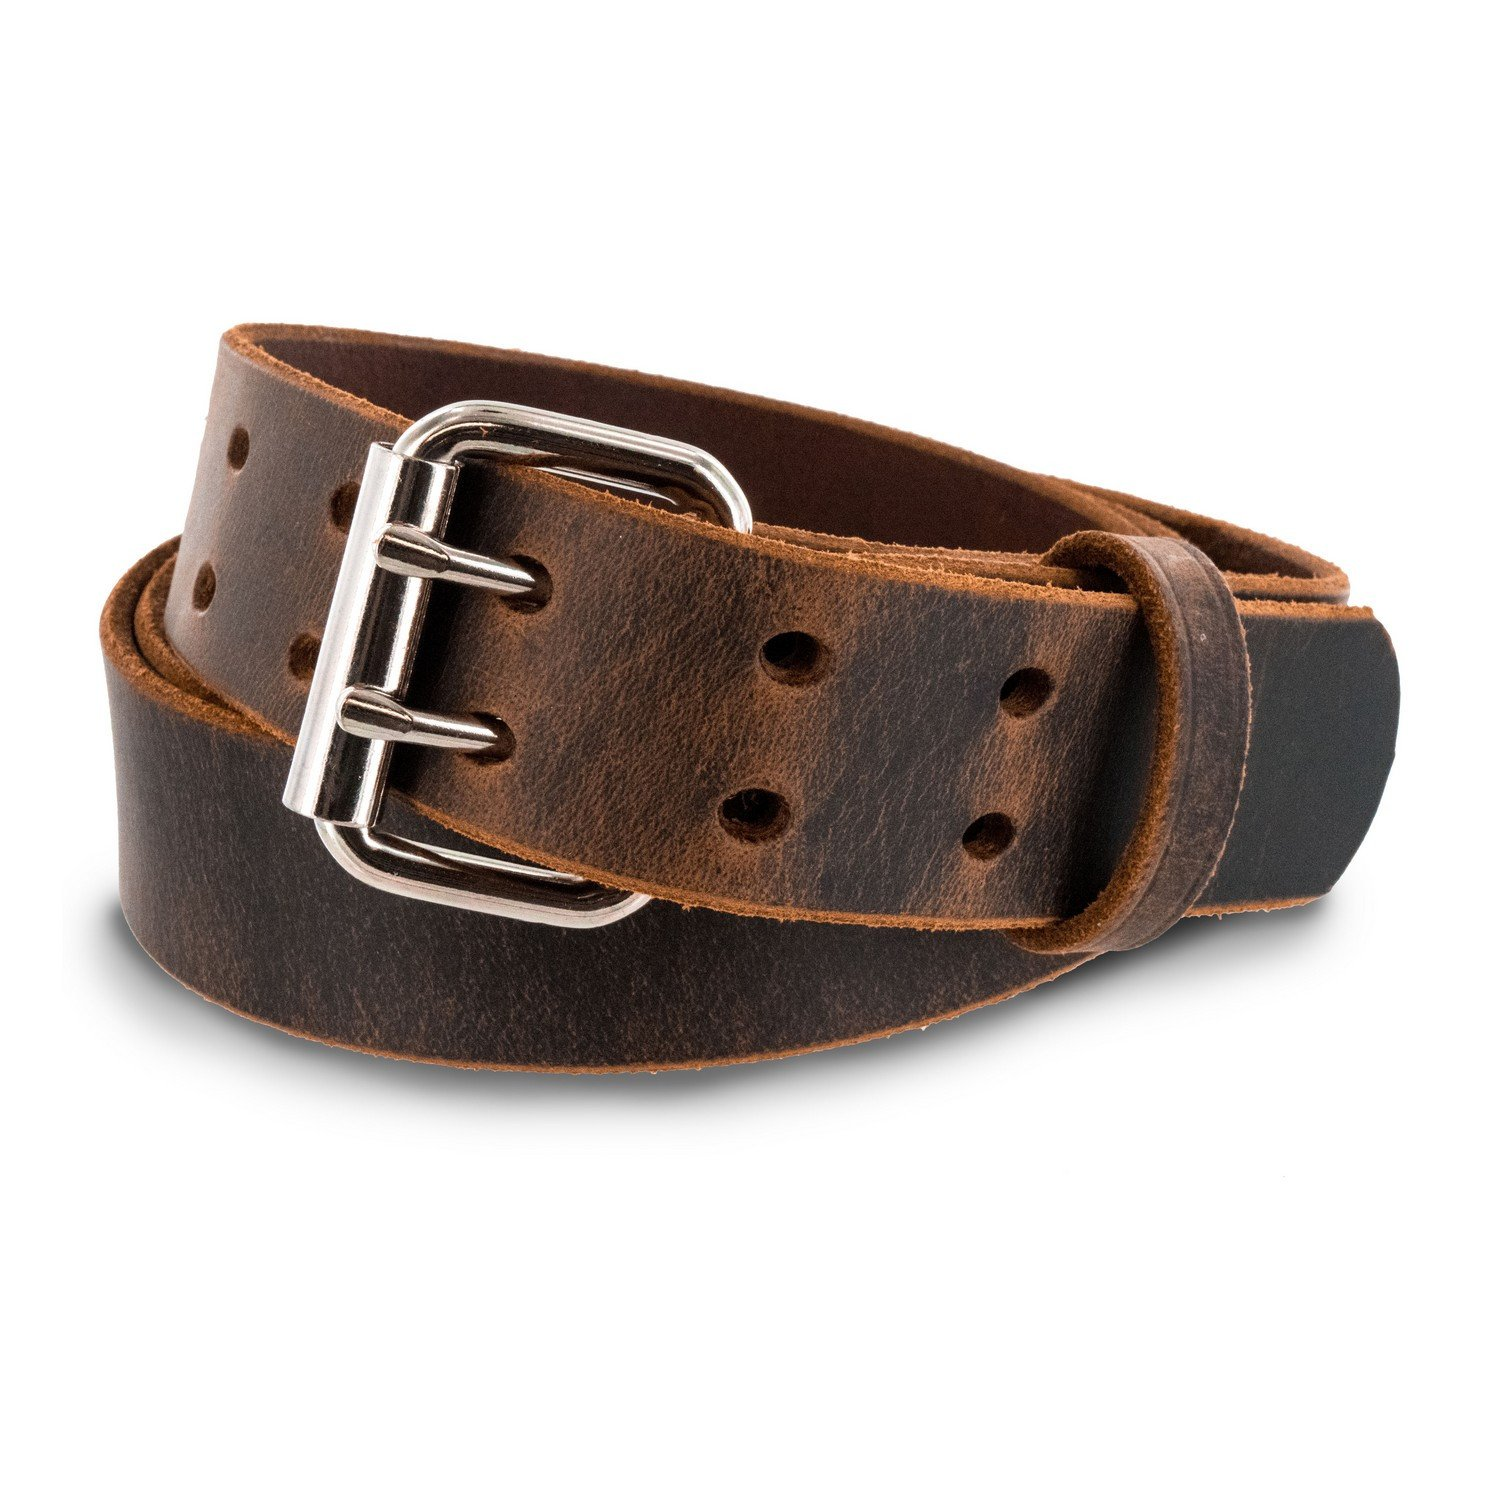 Hanks Legend - Men's Double Prong Leather Belt - Heavy Duty Belts - USA Made - 100 Year Warranty A2200